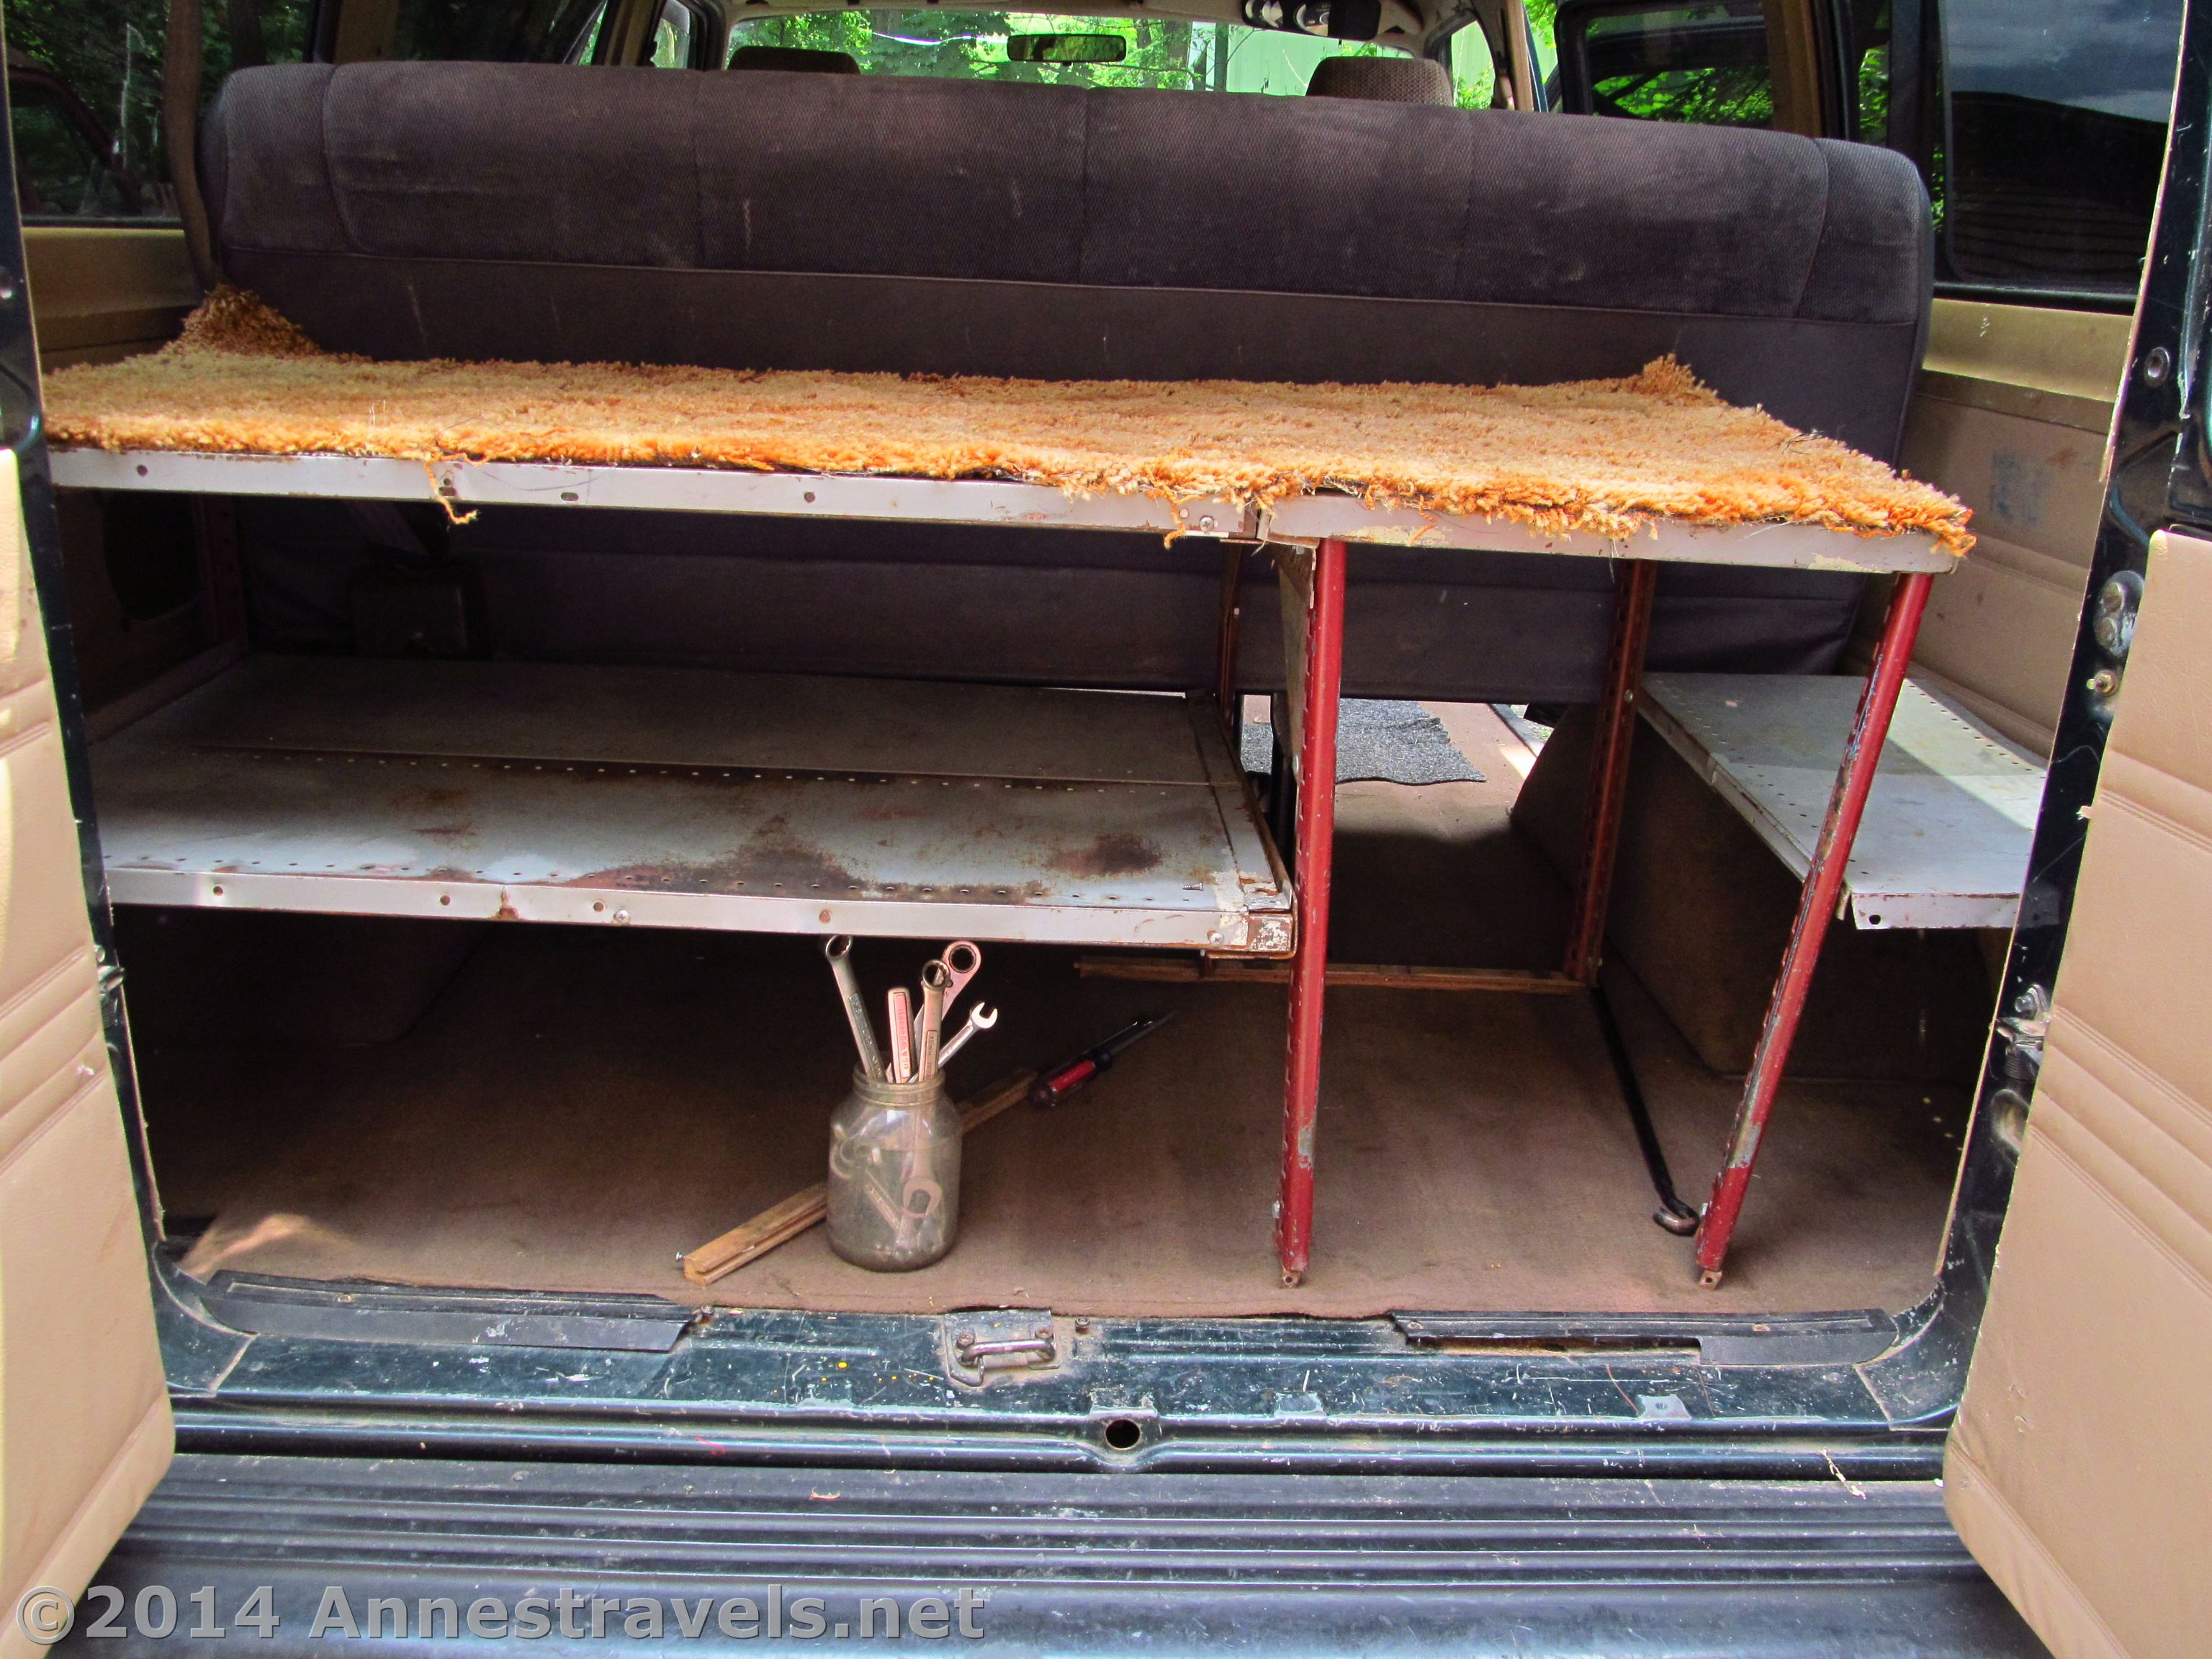 Diy Shelving Unit For The Back Of A Van Or Other Vehicle